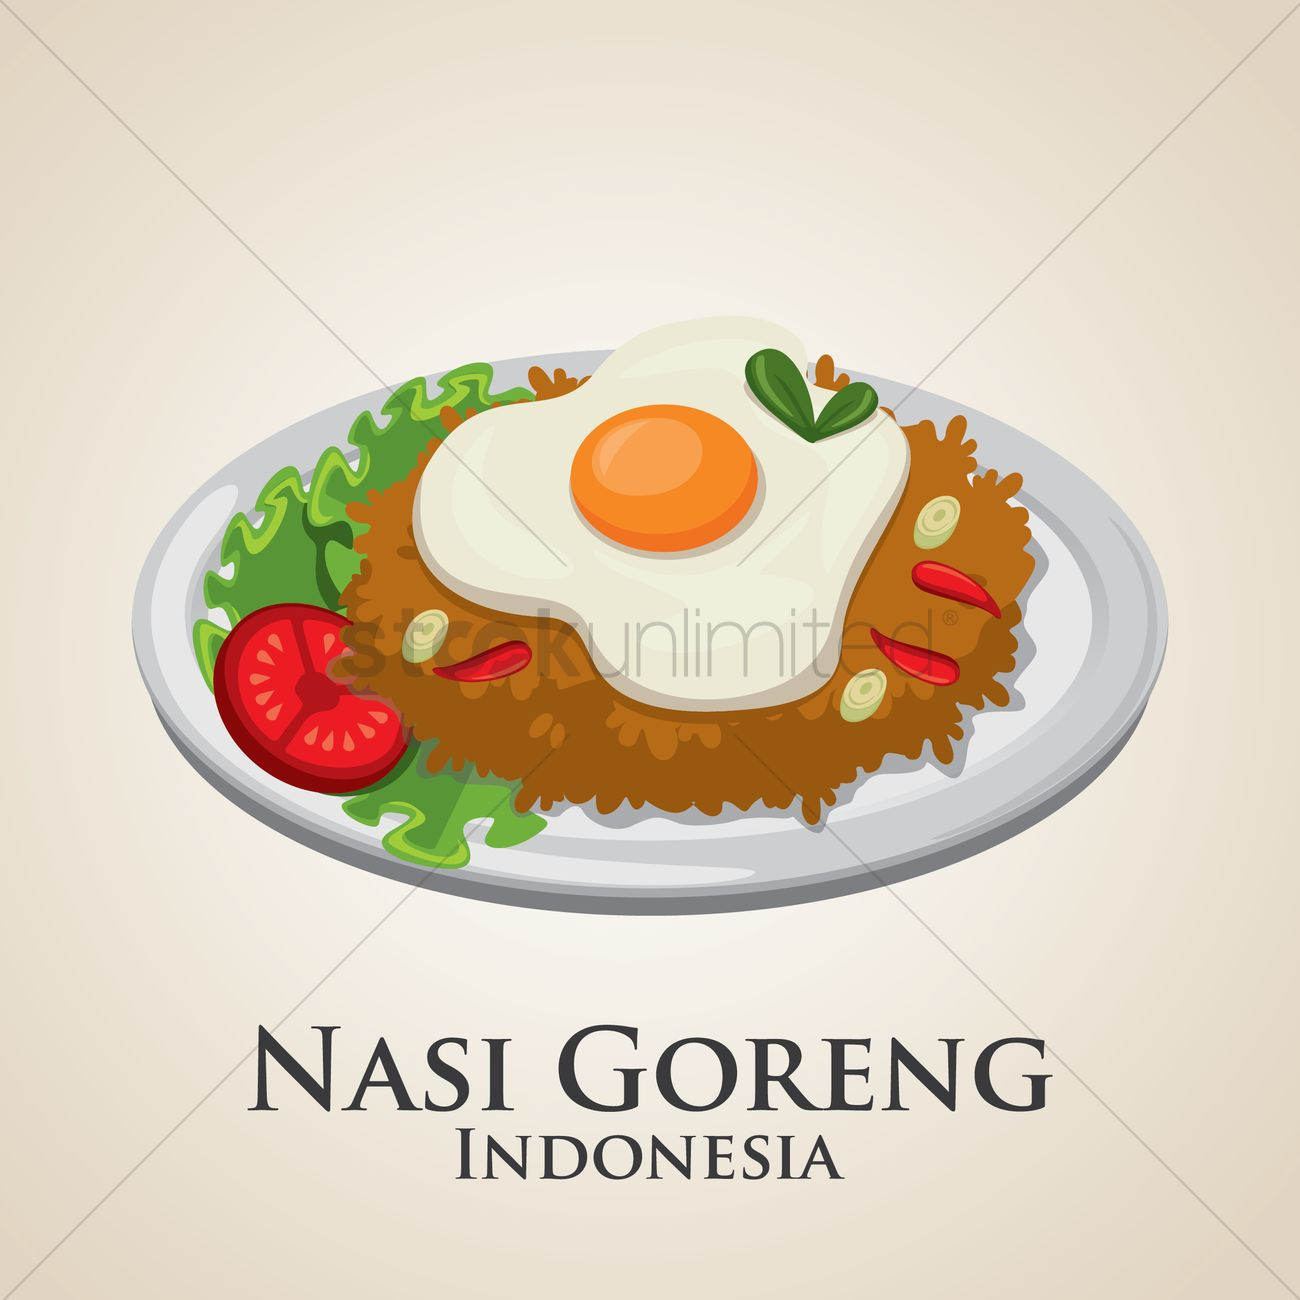 Nasi goreng indonesia Vector Image - 1993500 | StockUnlimited